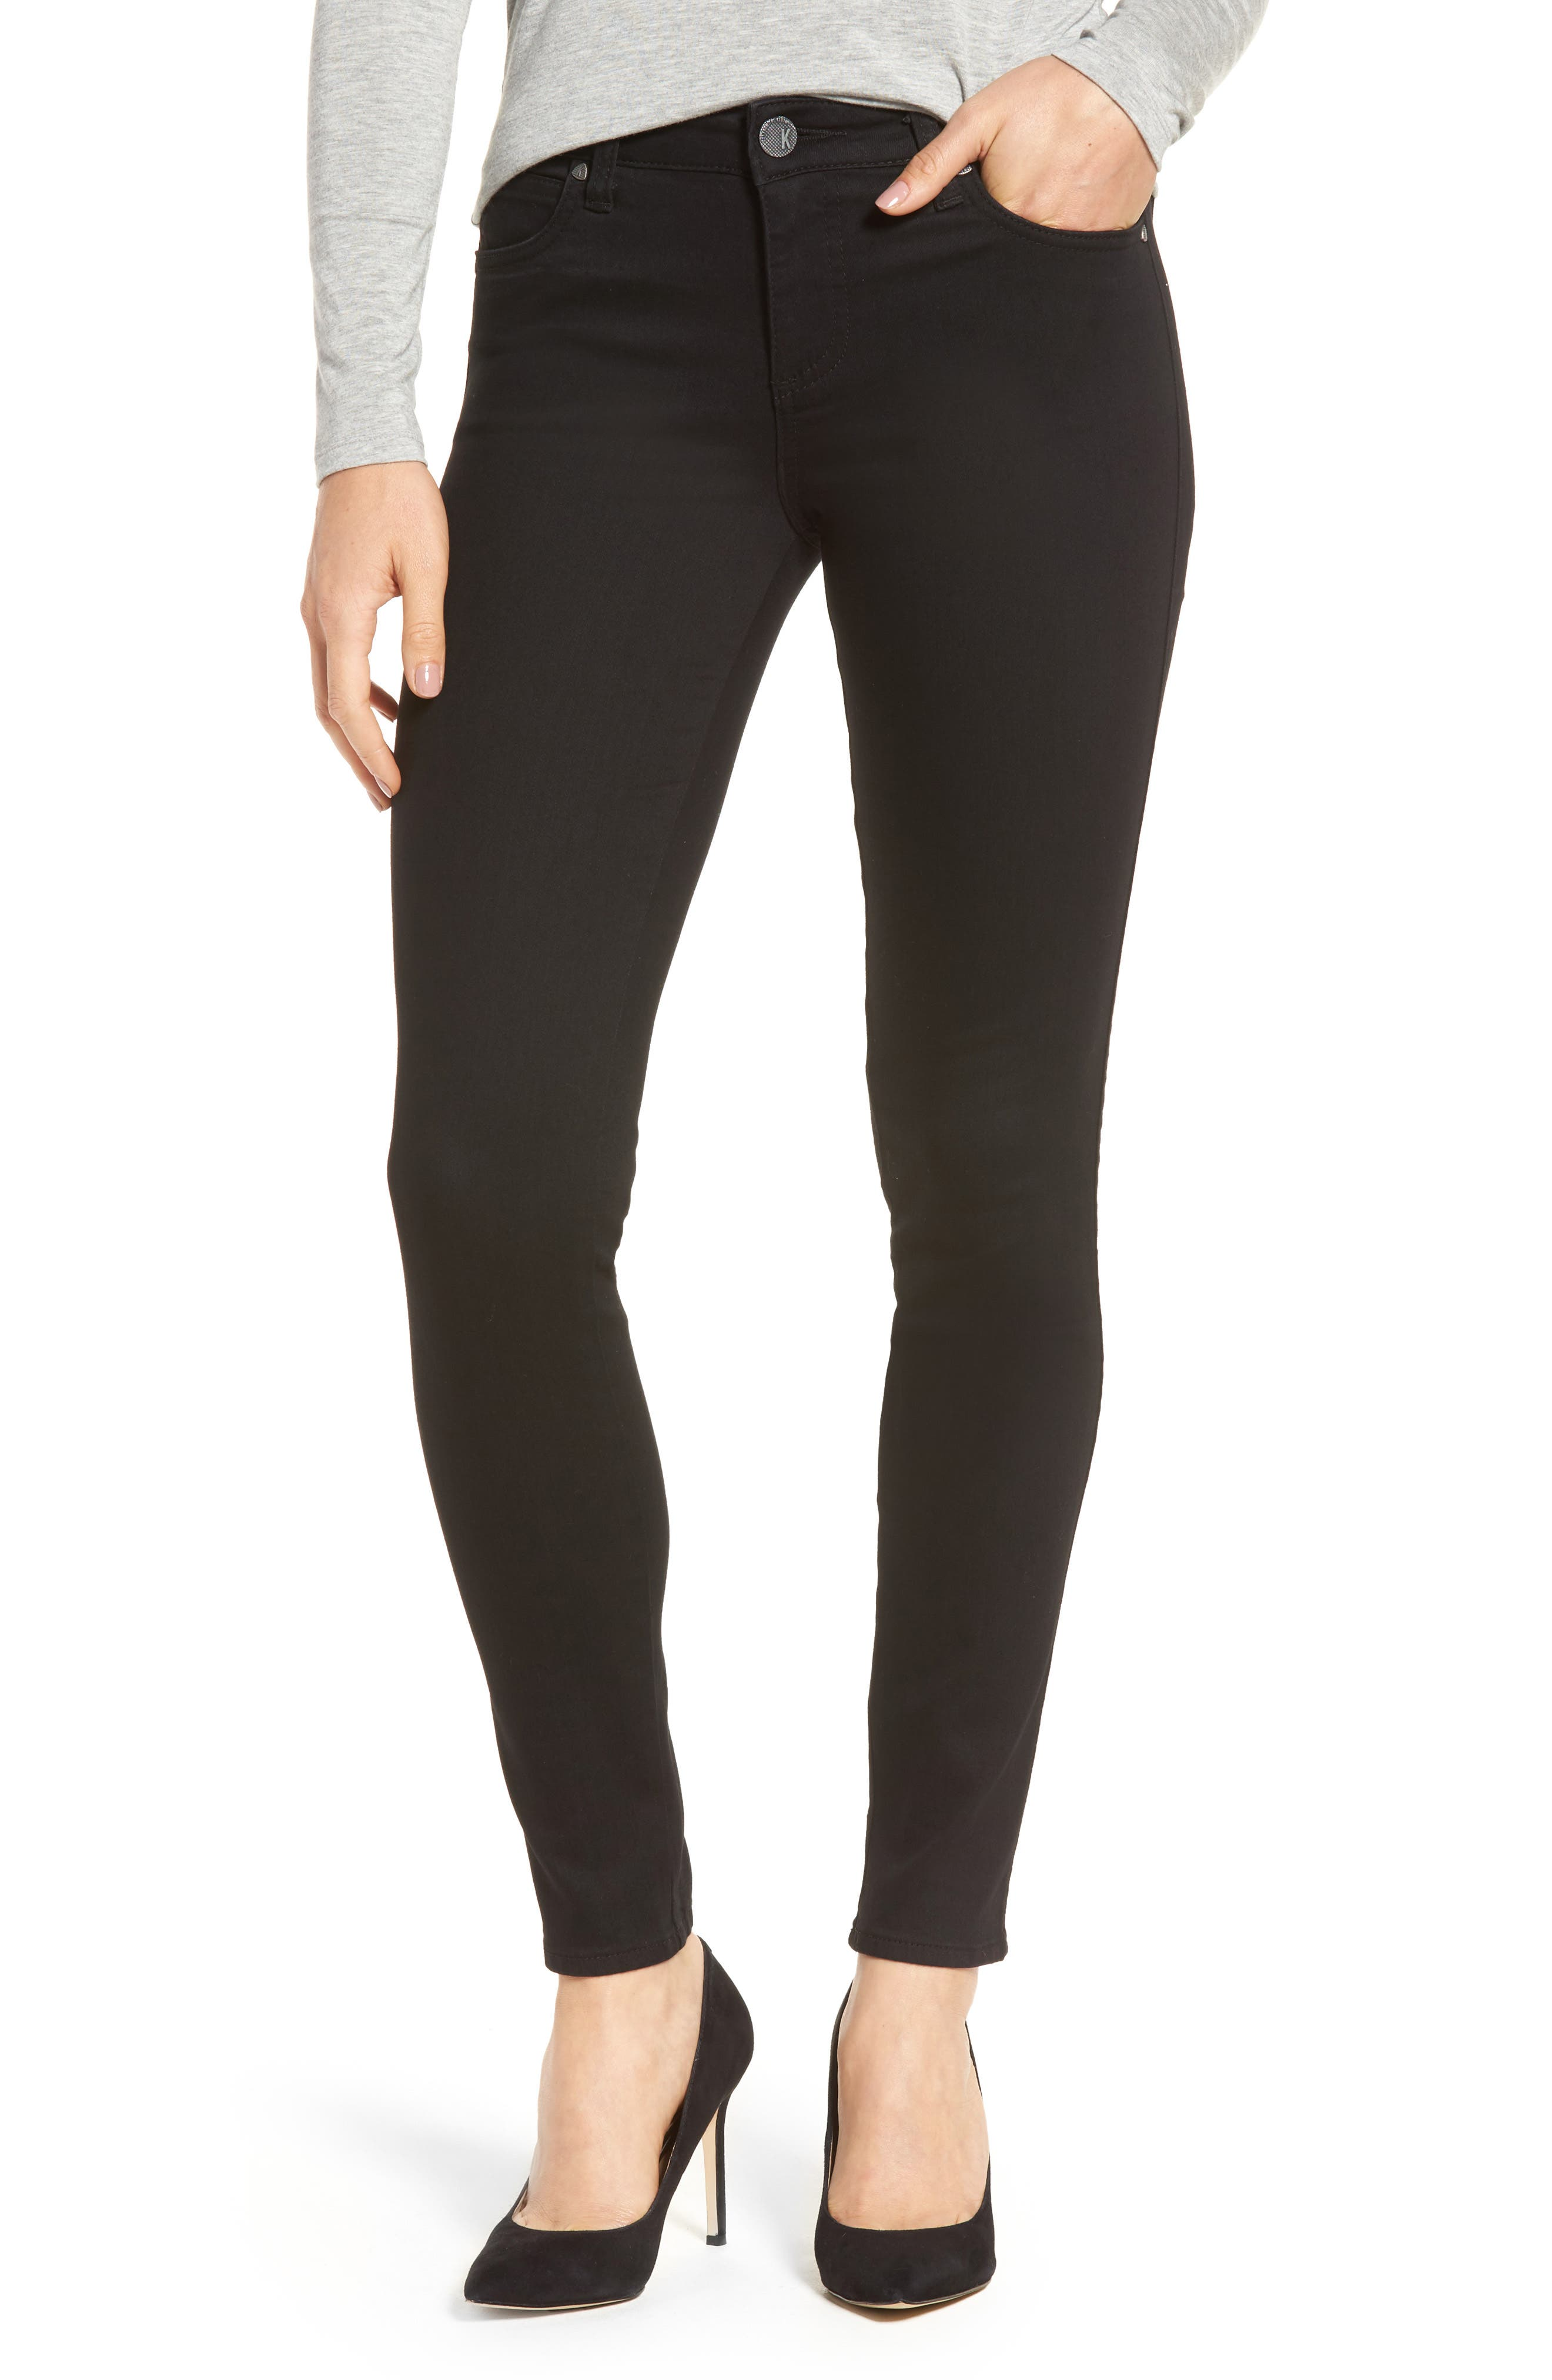 Diana Curvy Fit Skinny Jeans,                         Main,                         color, 002